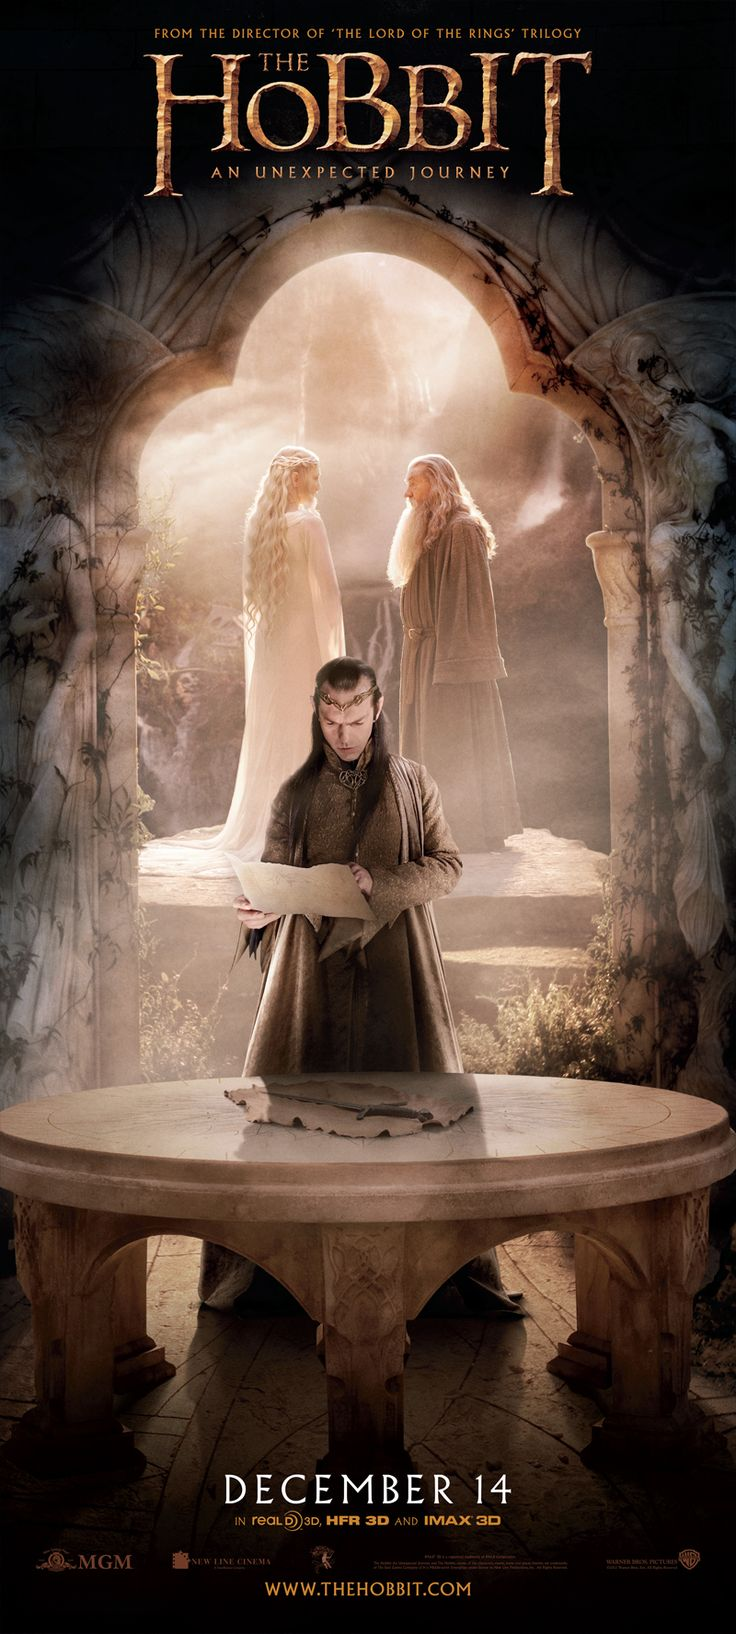 Hobbit gmail theme - 120 Best Images About The Hobbit On Pinterest Lotr Desolation Of Smaug And Legolas